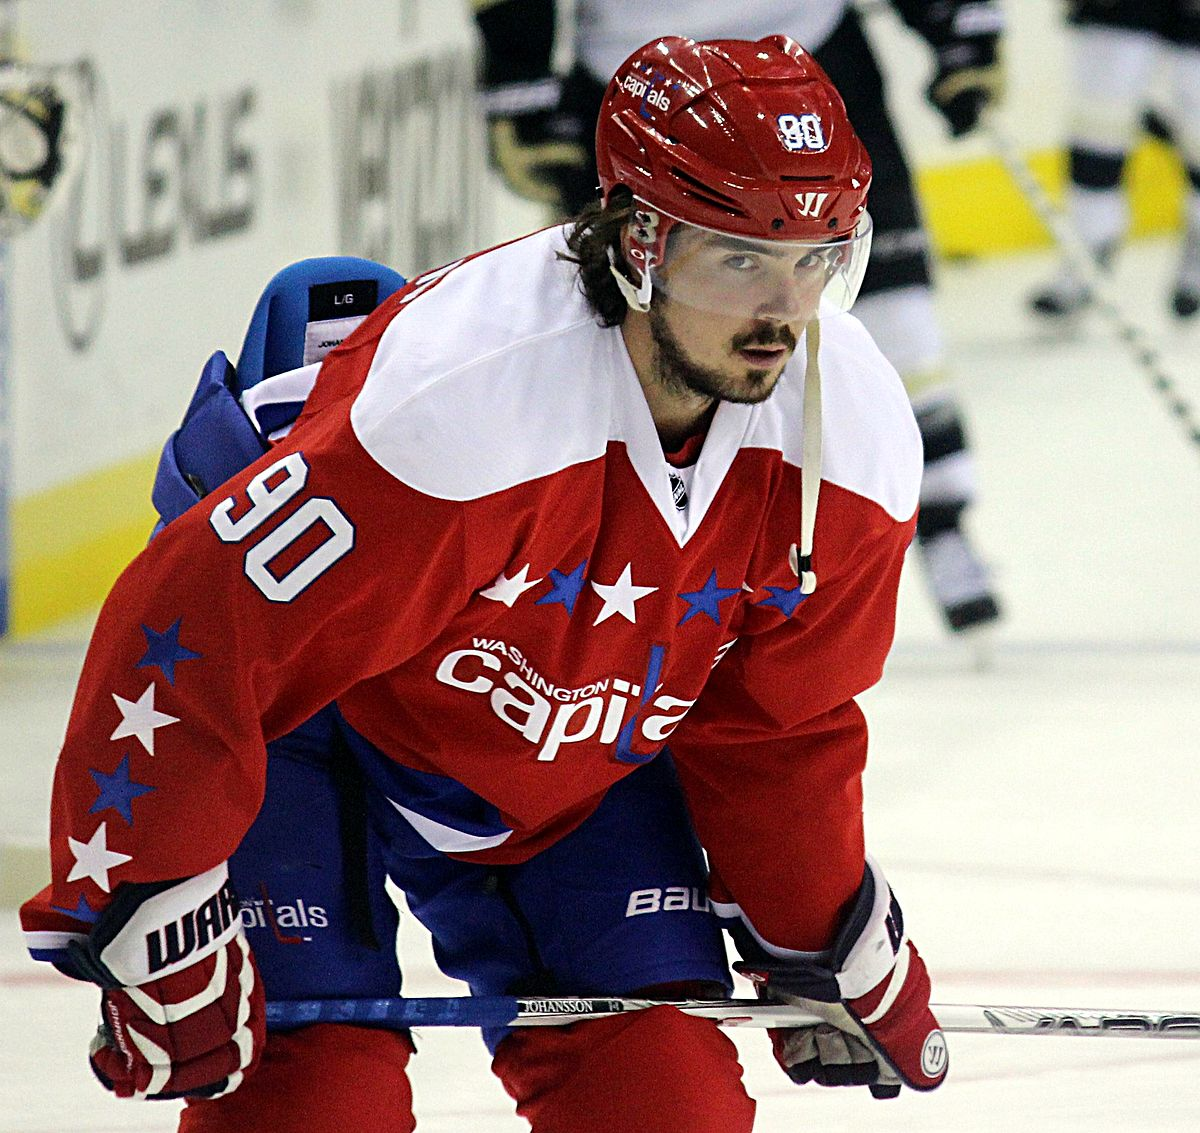 Image Result For Capitals Ice Hockey